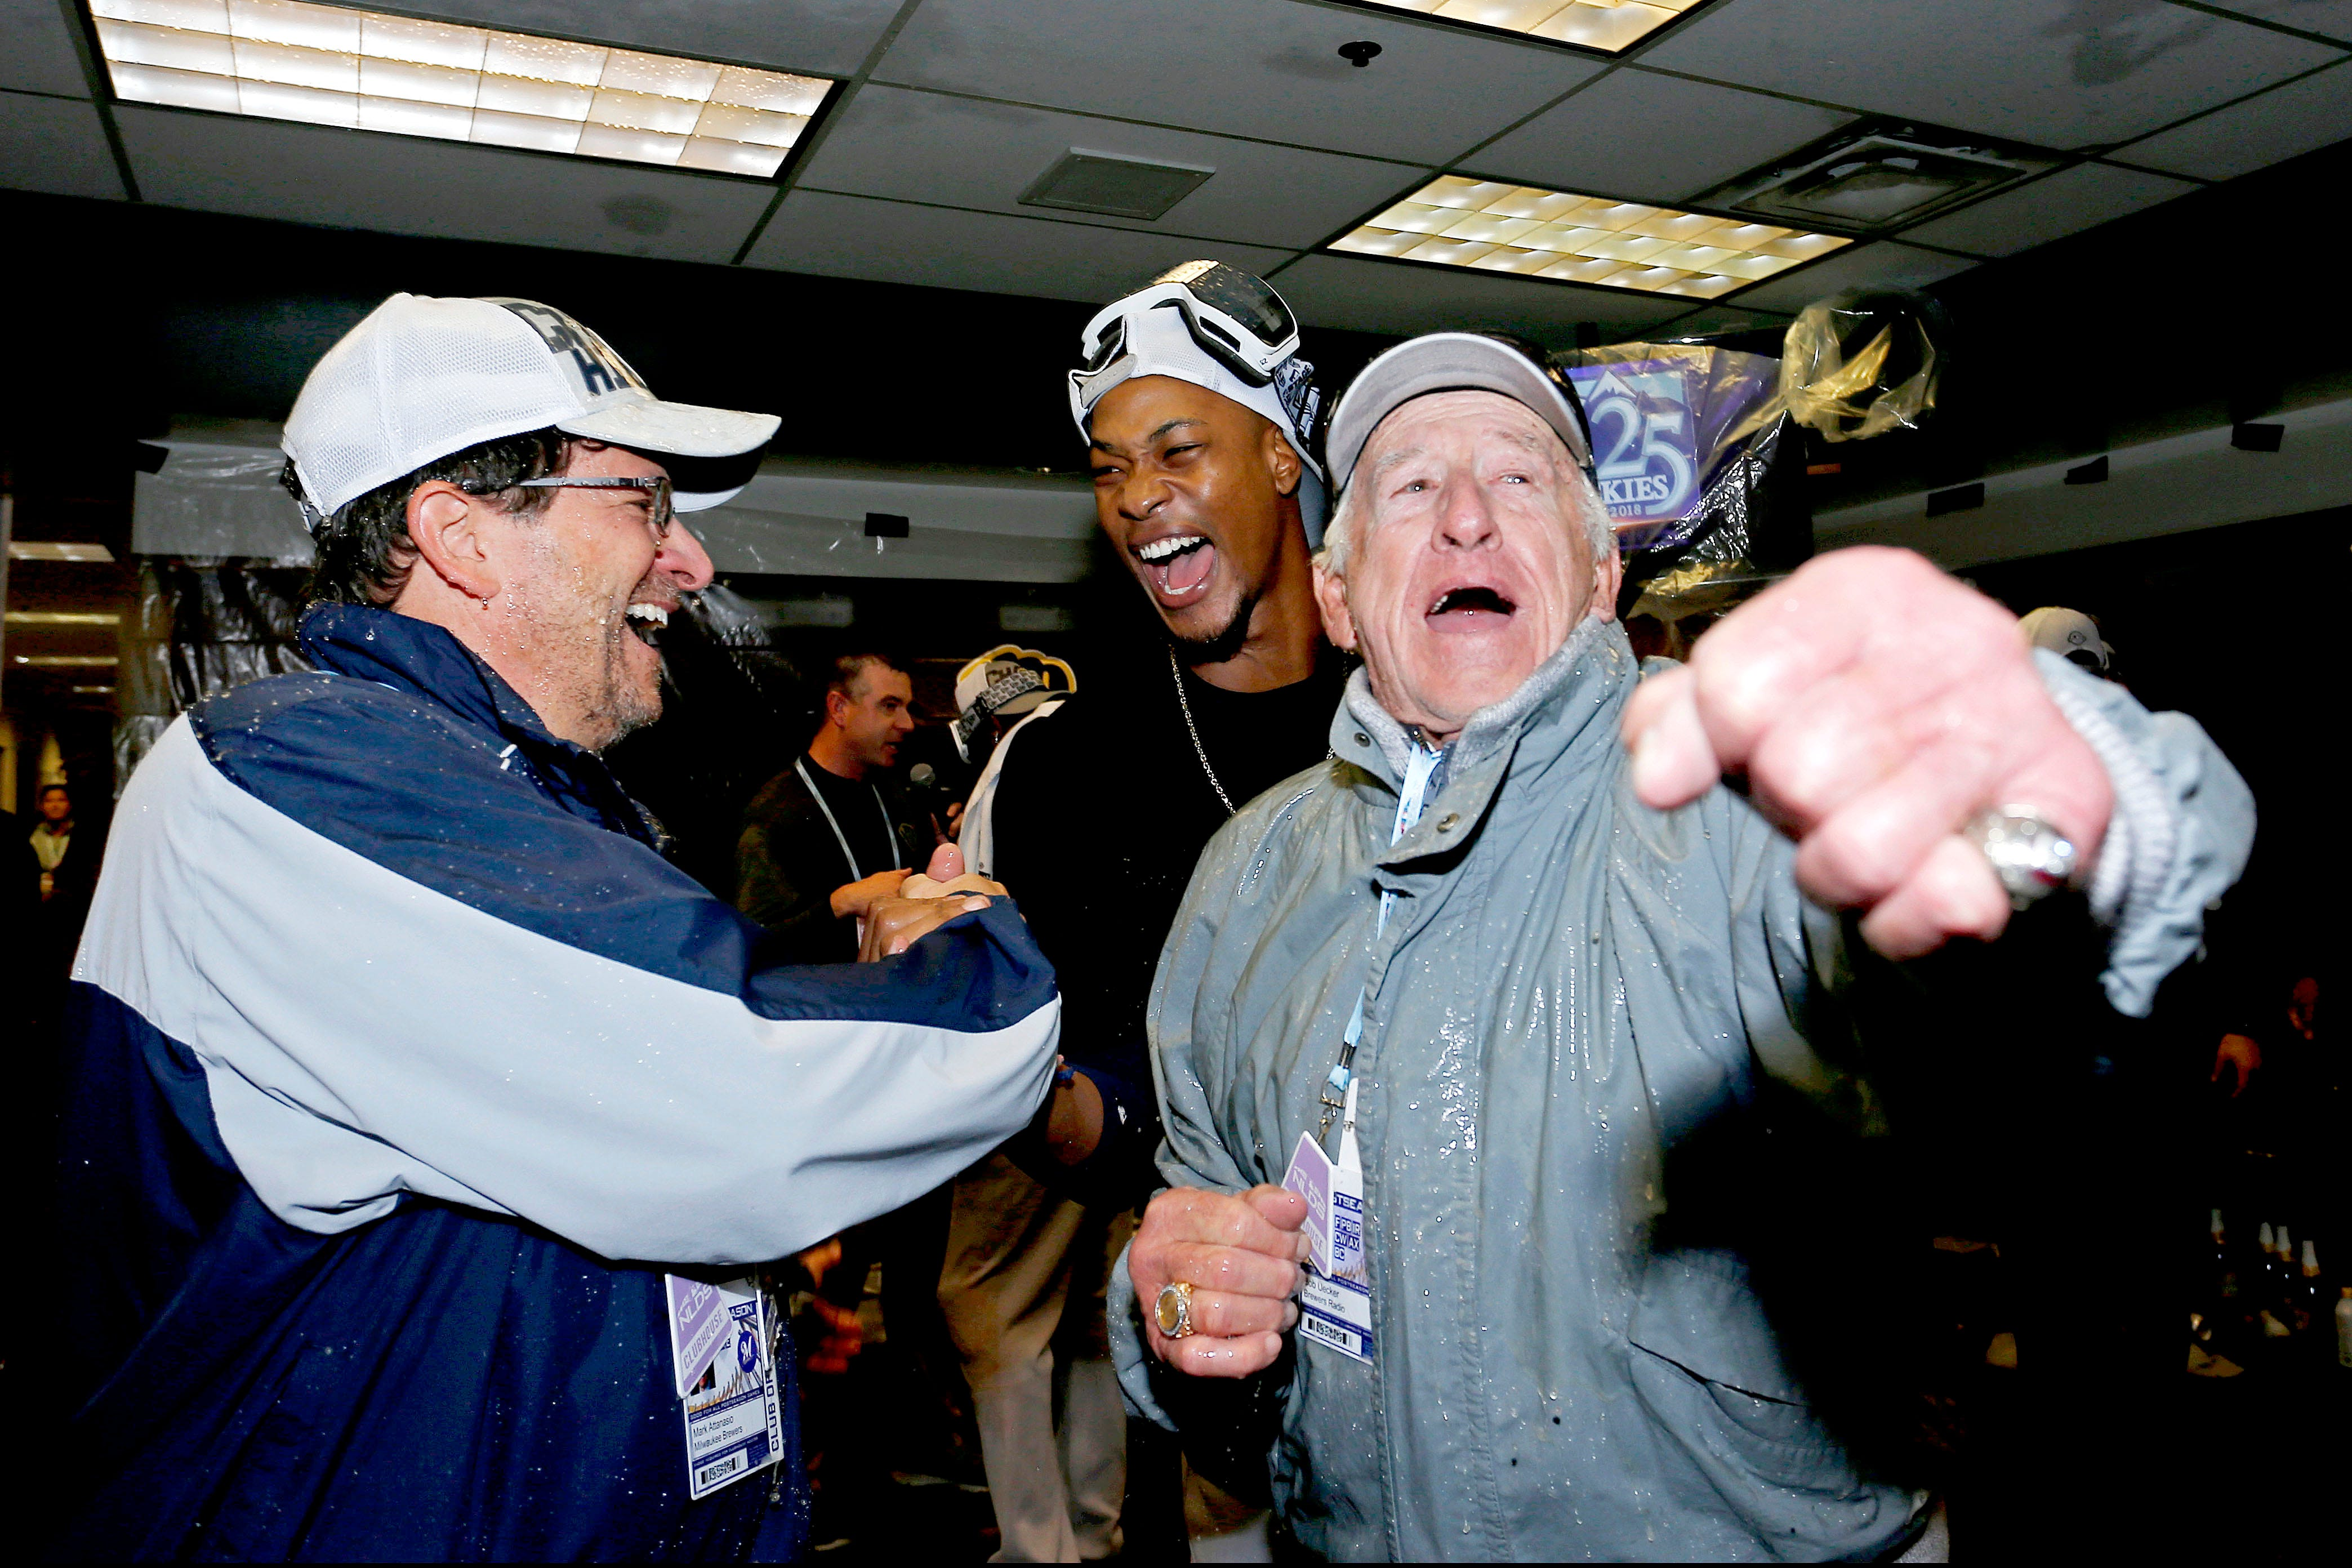 Oct 7, 2018: The Milwaukee Brewers celebrate with broadcaster Bob Uecker after beating the Colorado Rockies in game three of the 2018 NLDS playoff baseball series at Coors Field.